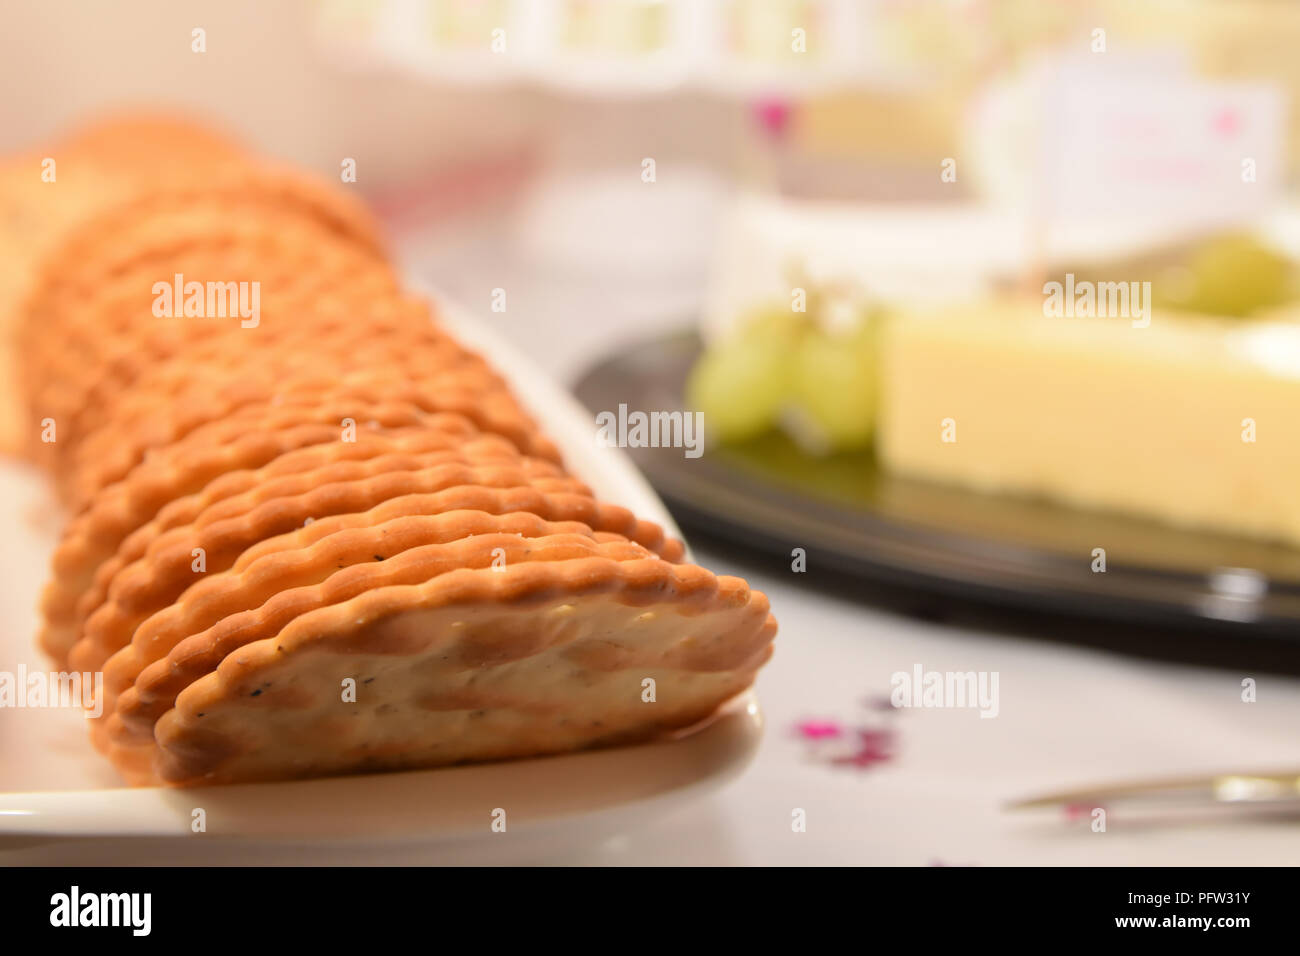 Crisp crackers on a long white dish with cheese and grapes out of focus on a table behind. Party buffet set up with very shallow depth of field - Stock Image